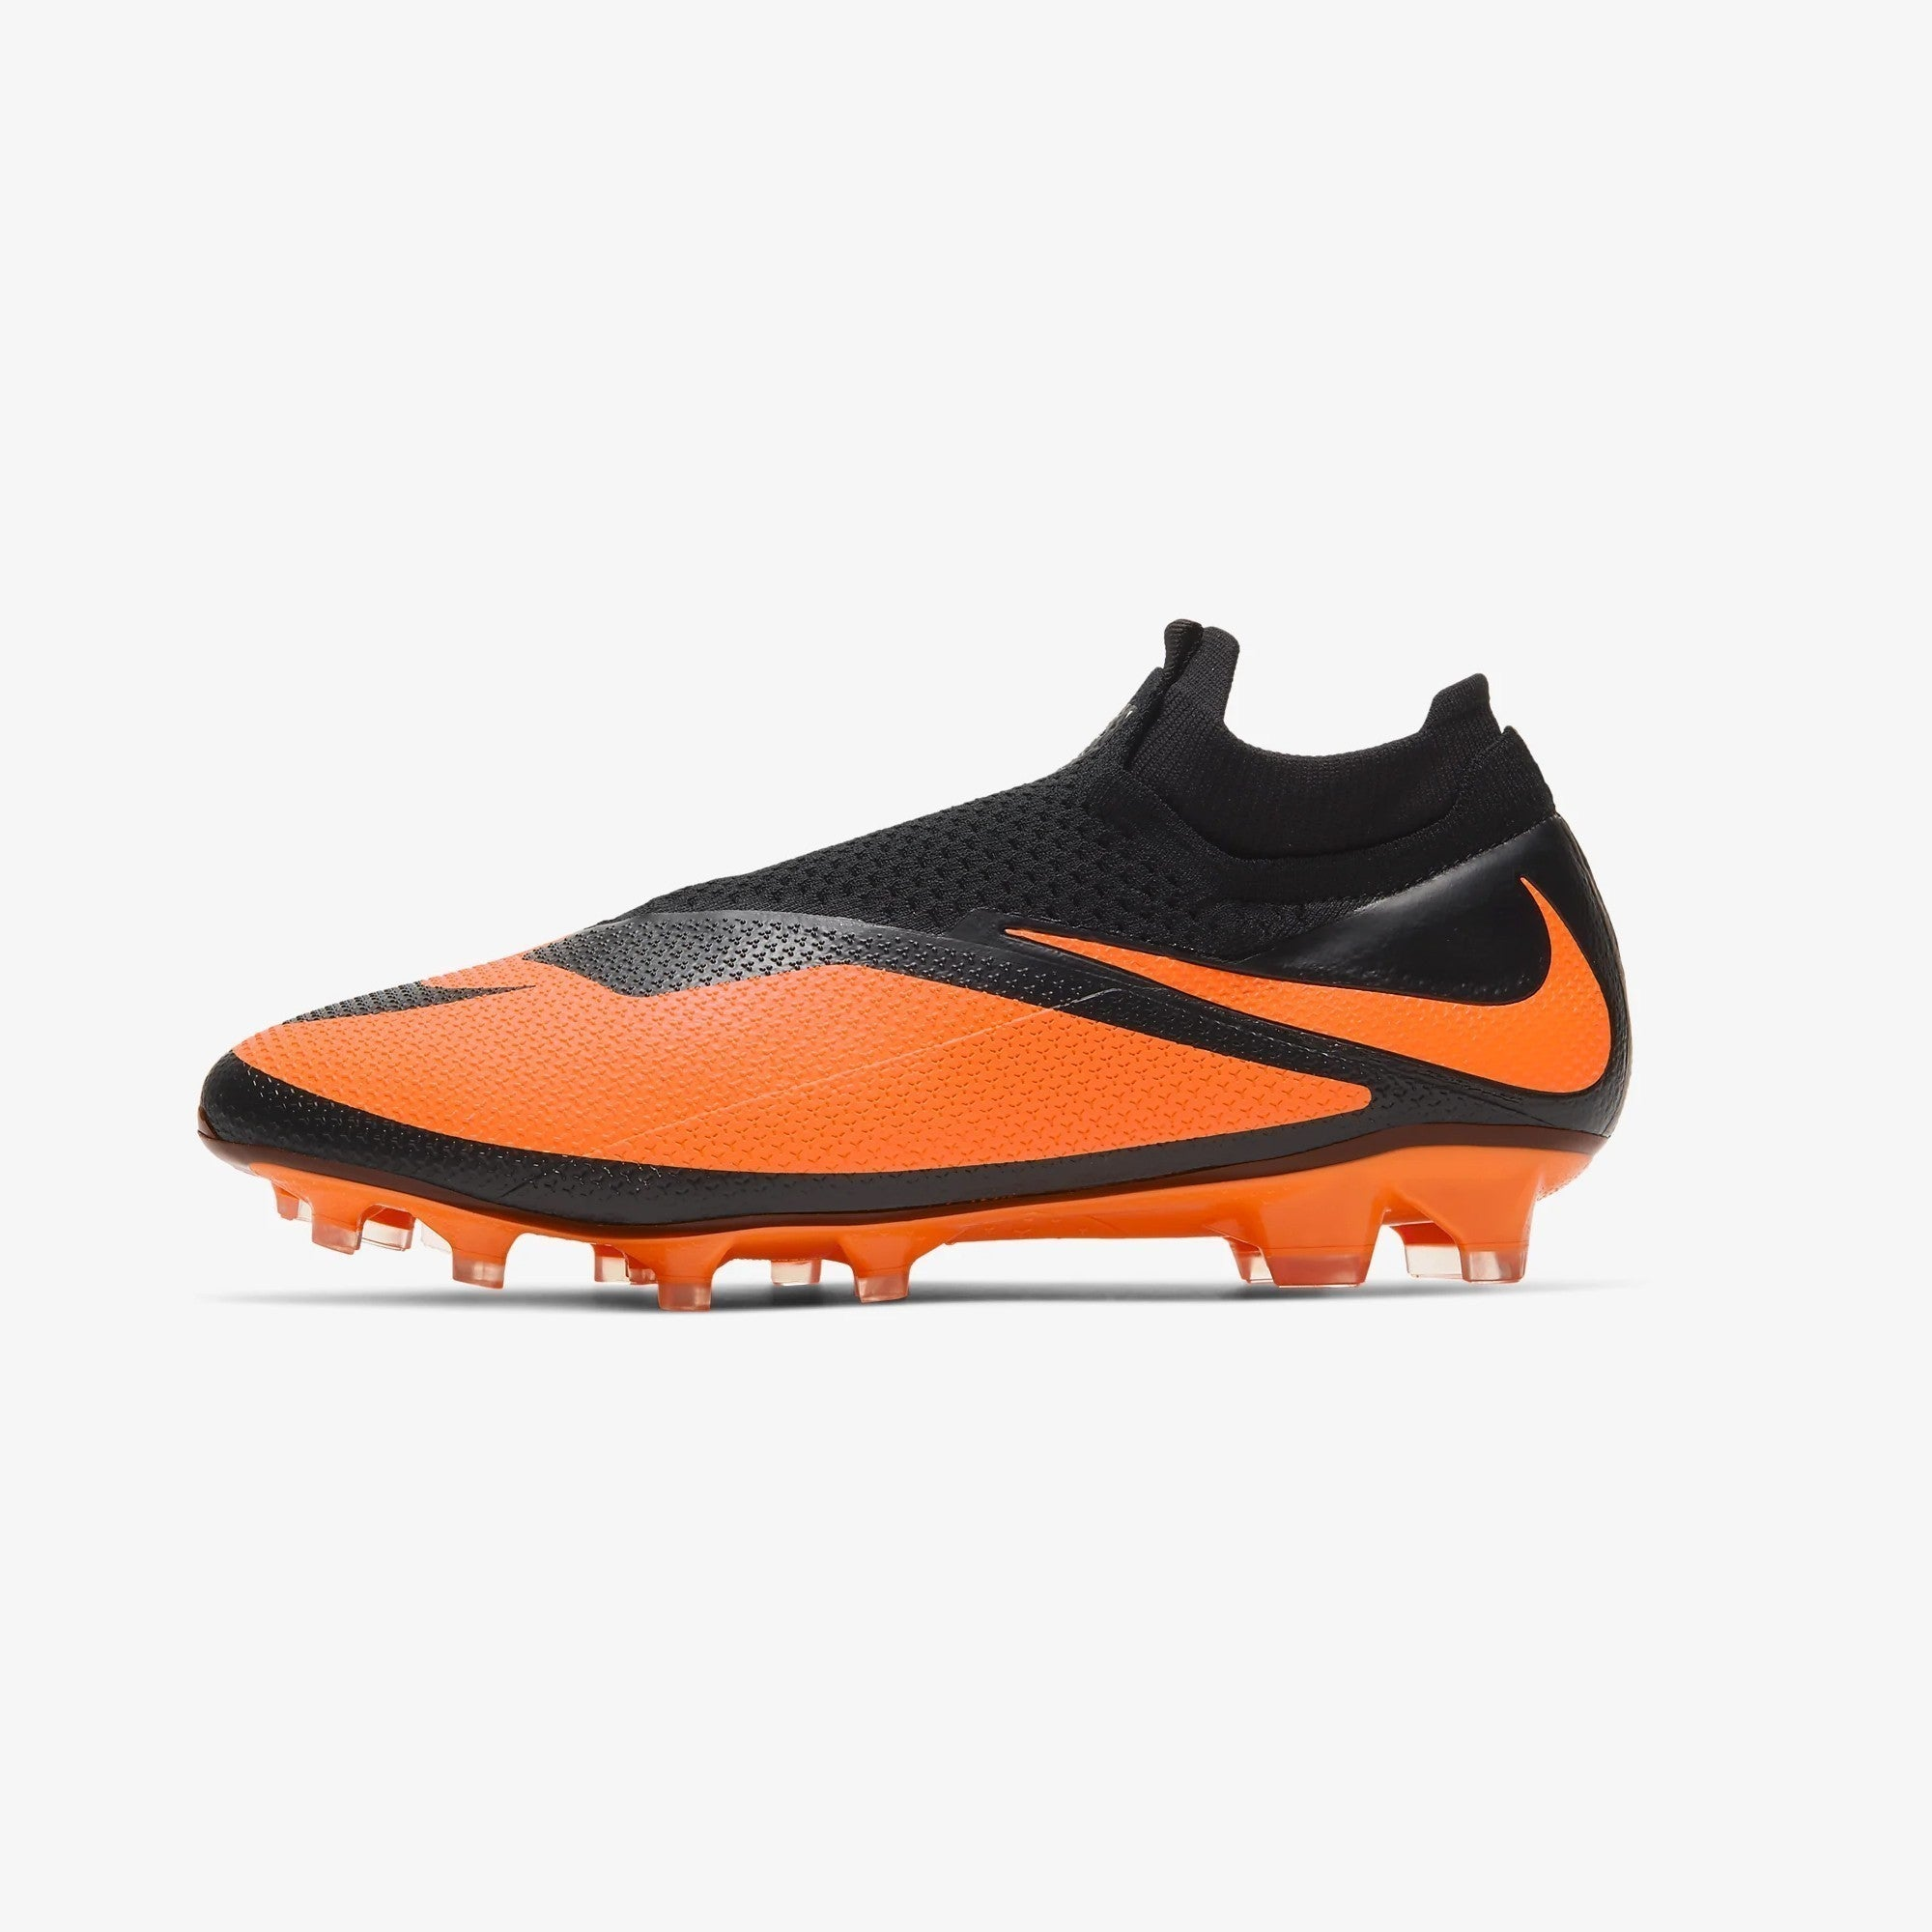 Phantom Vision 2 Elite DF FG Firm Ground Soccer Cleat Black/Citrus